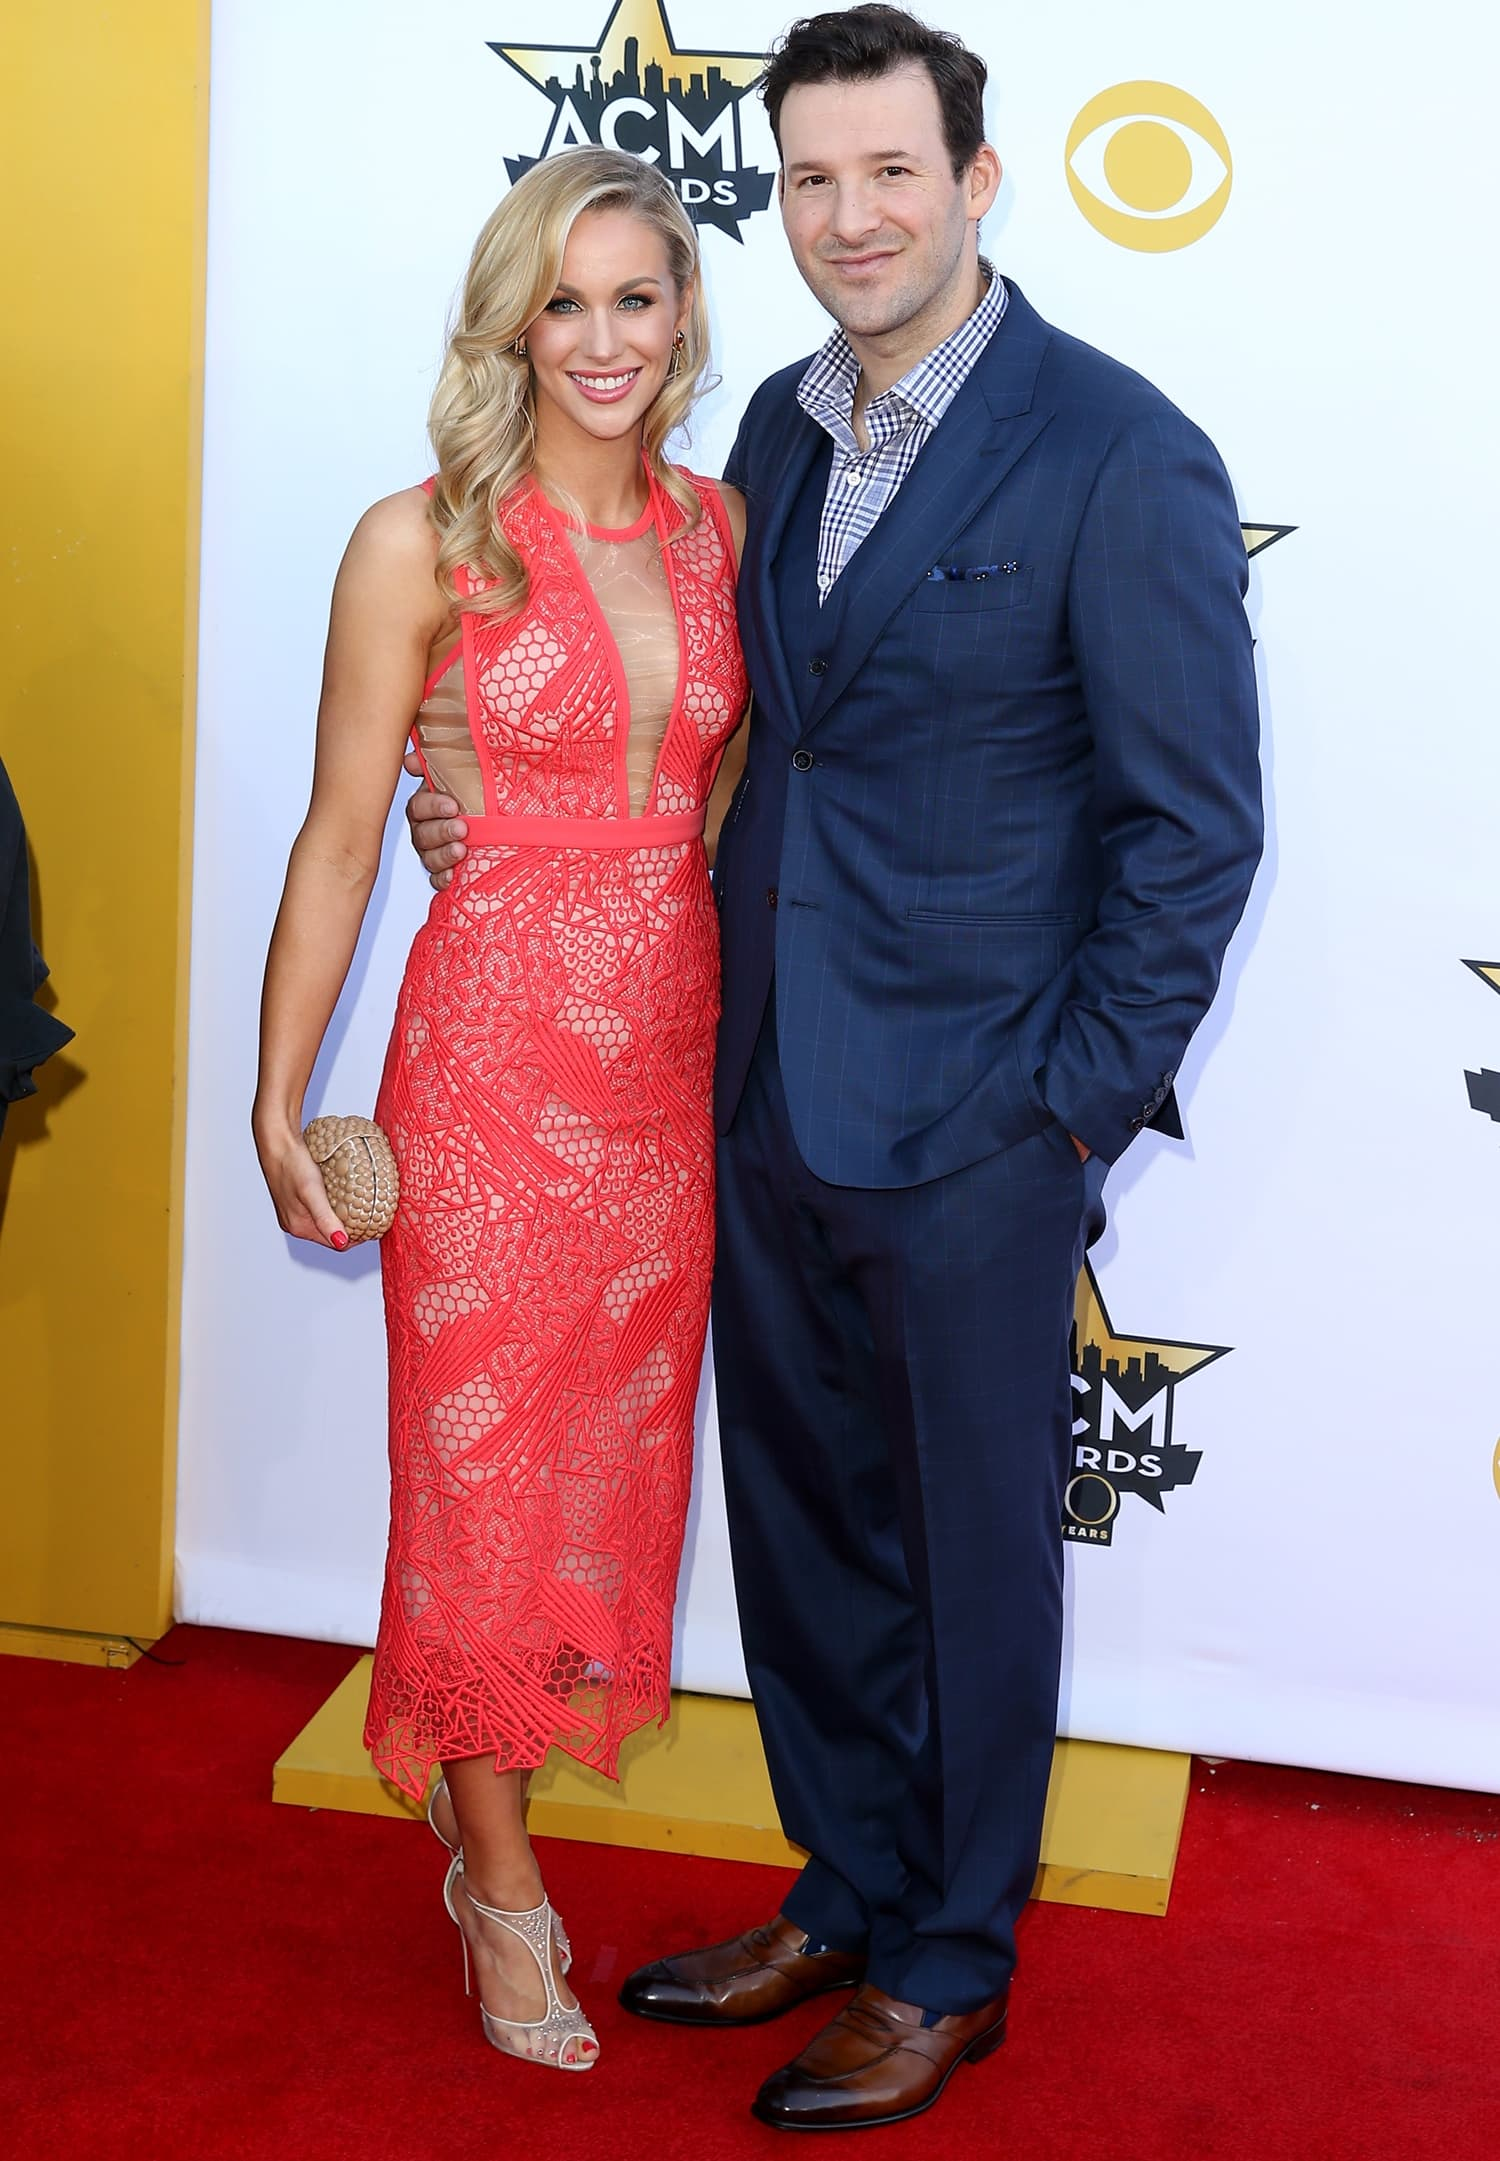 Reporter Candice Crawford (L) and professional football player Tony Romo